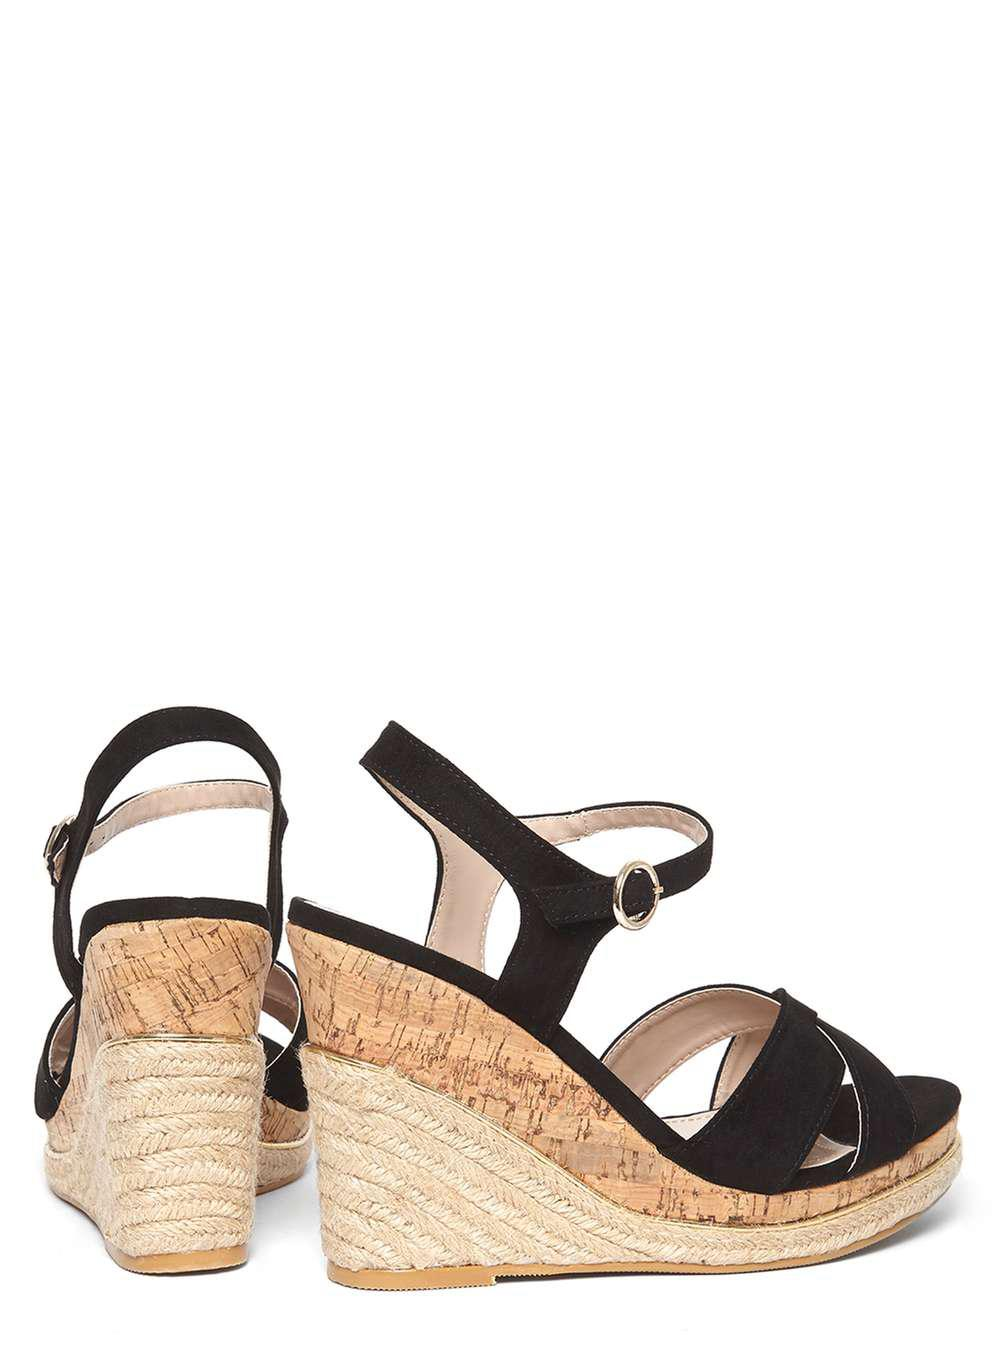 3b964c92b55 Gallery. Previously sold at  Dorothy Perkins · Women s Gold Sandals ...